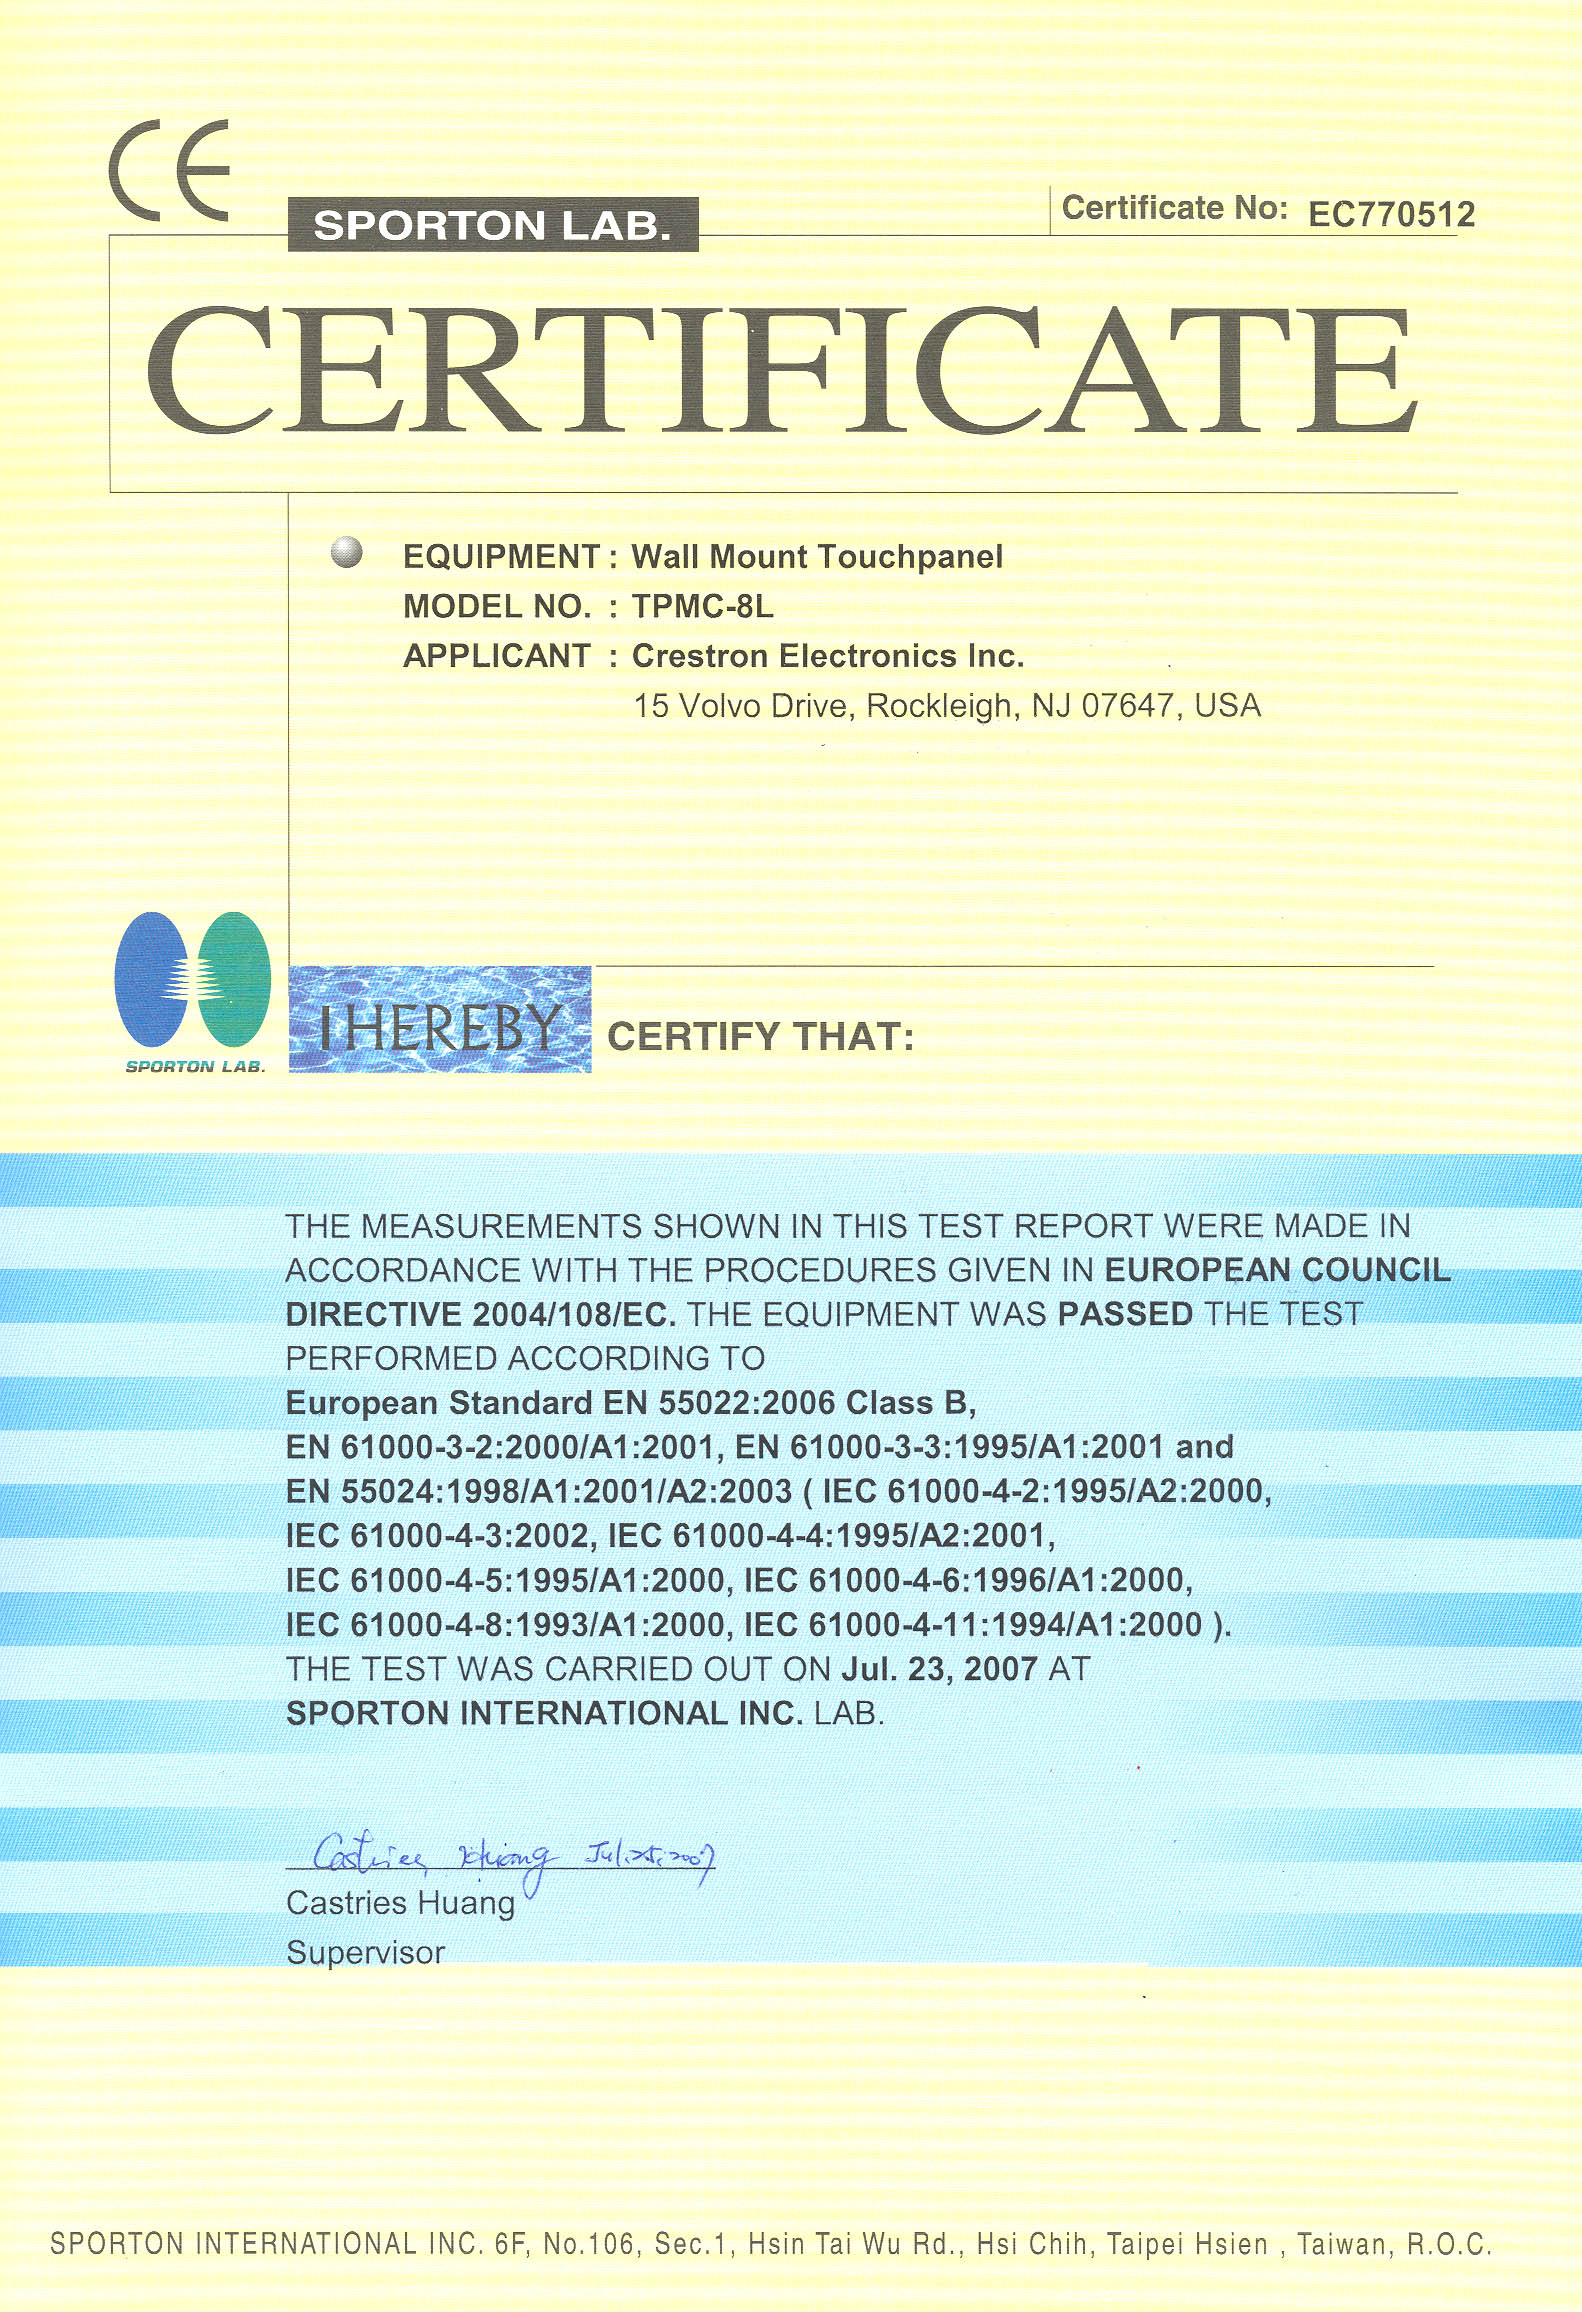 CE Certificates for Crestron Products